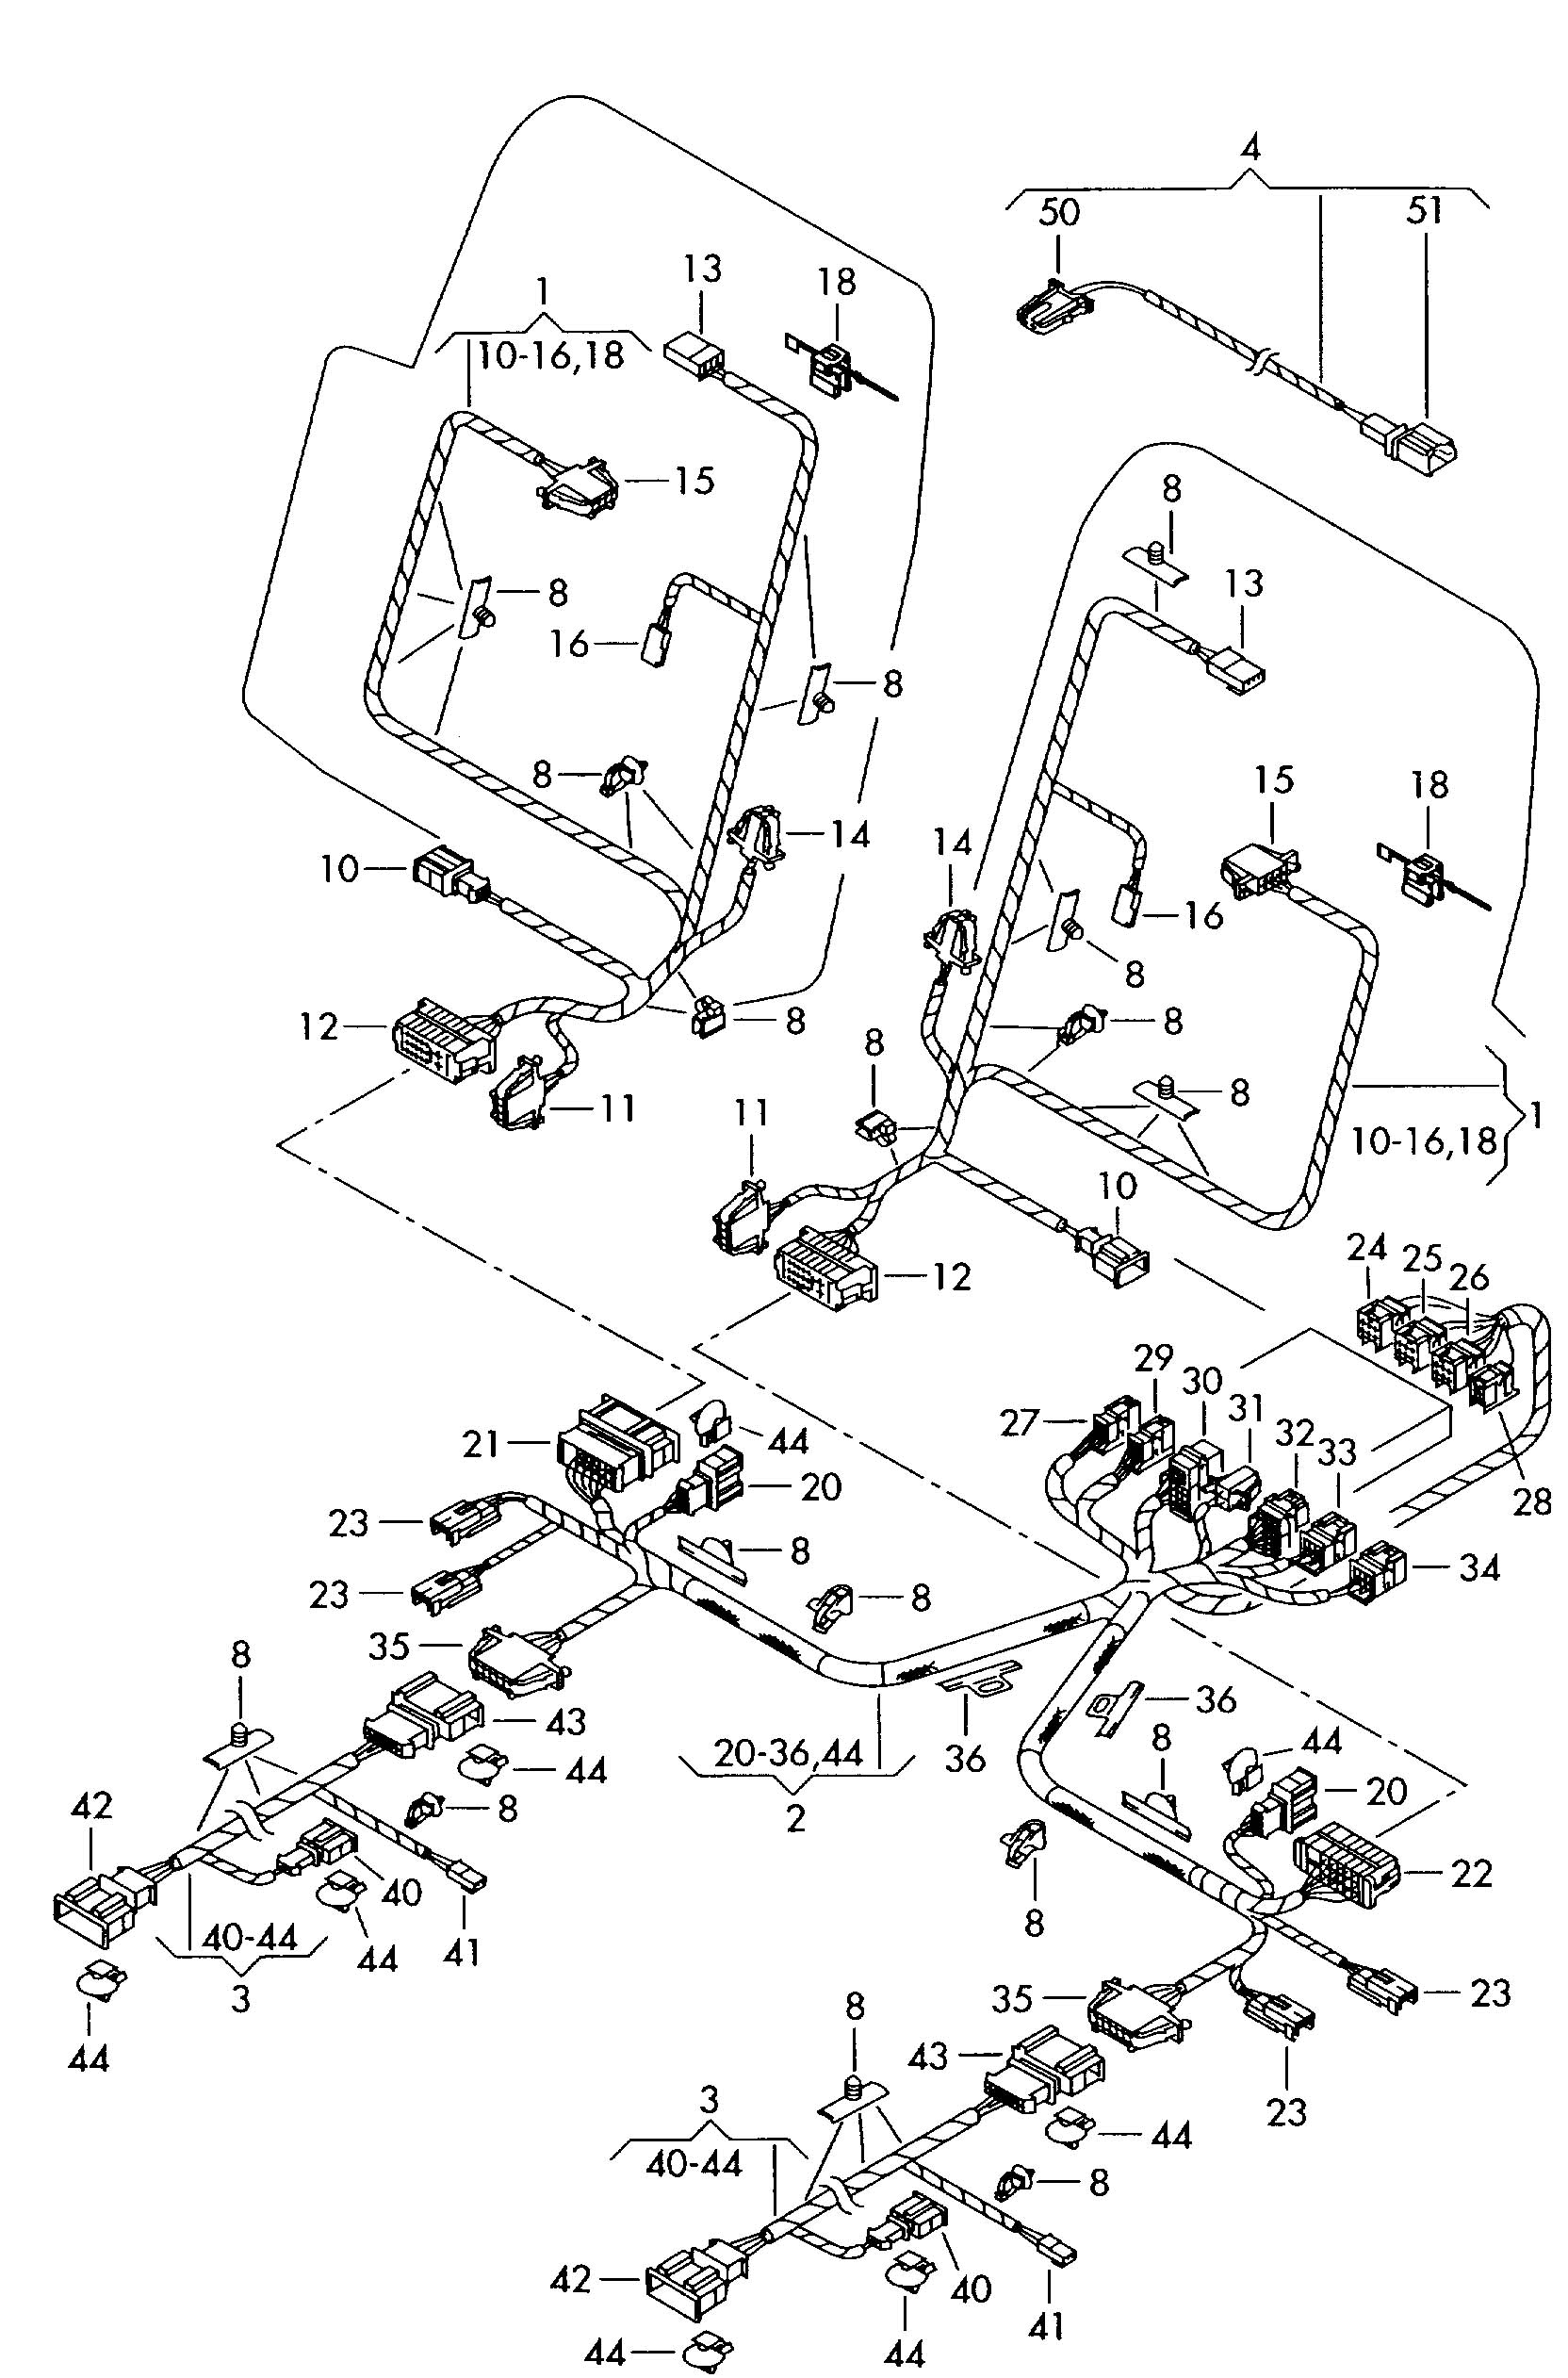 Wire harness for electri- single parts cally-operated seat